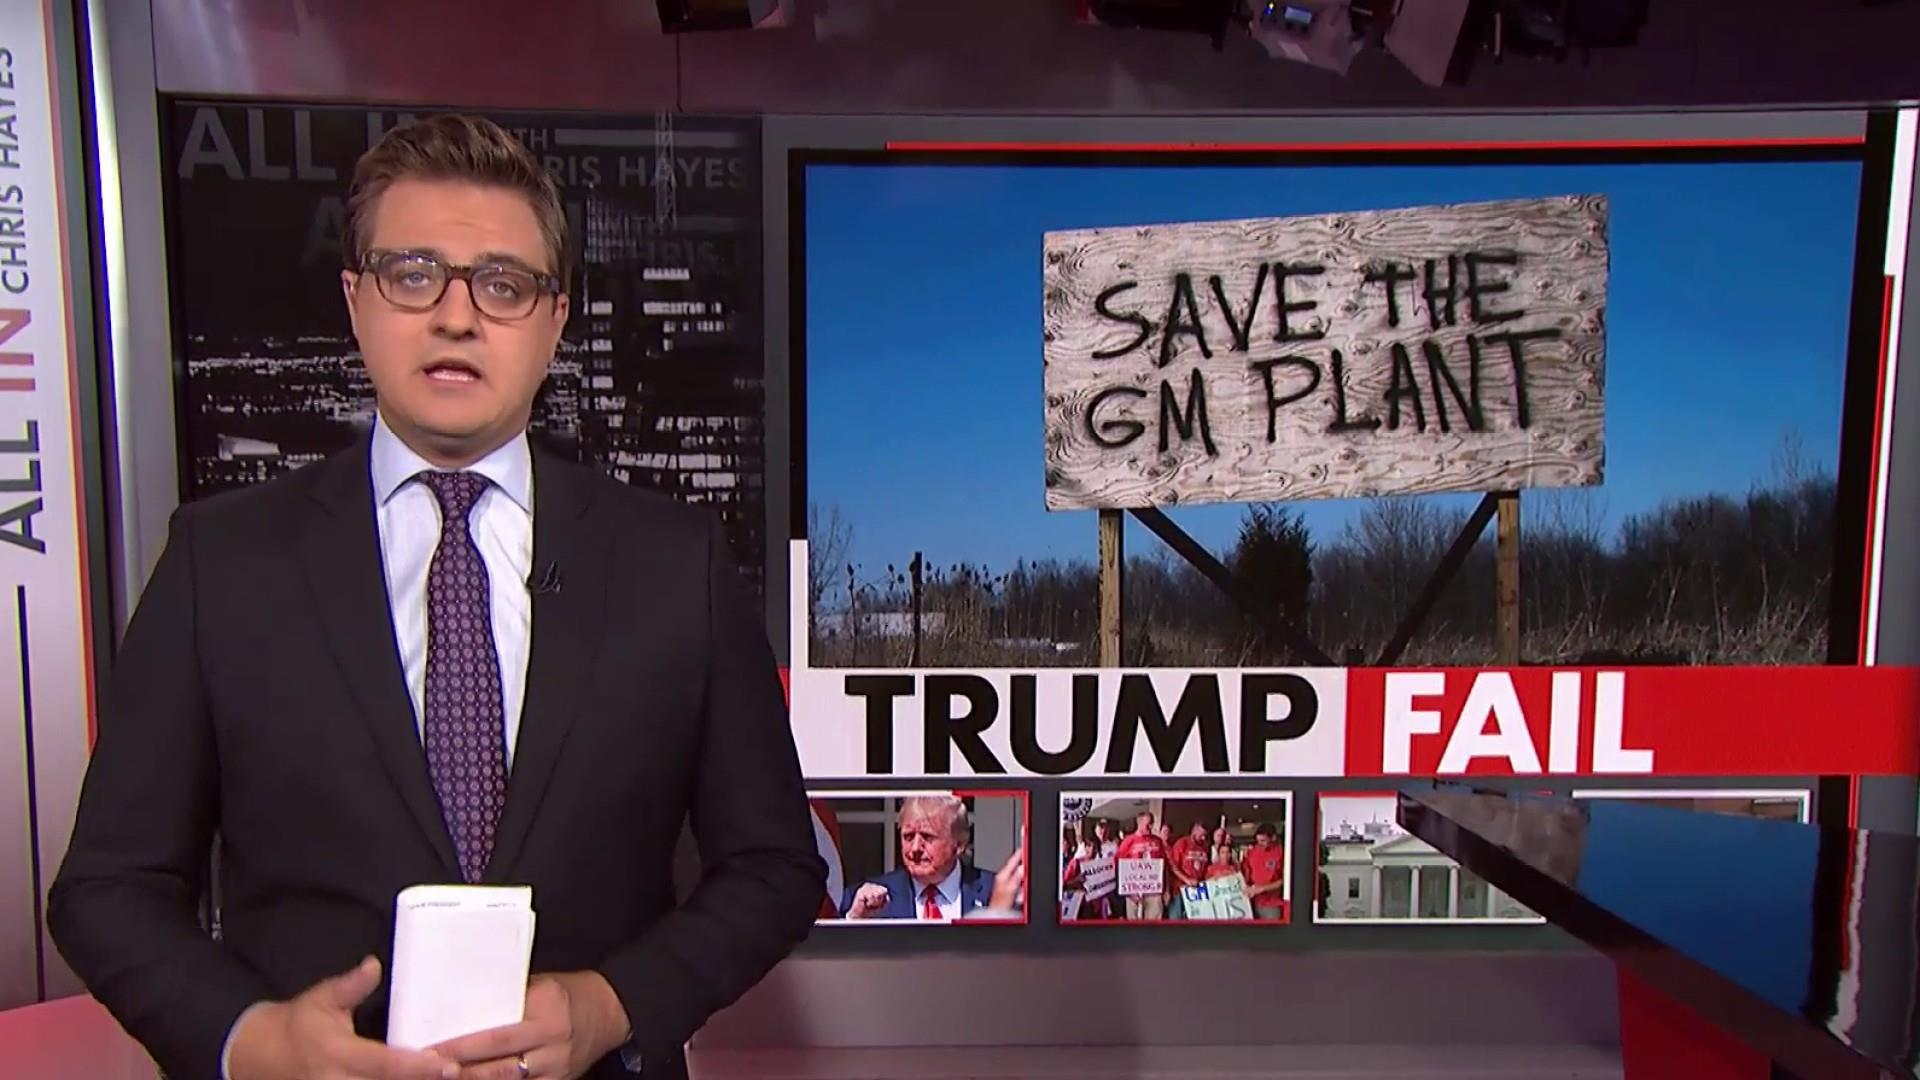 Chris Hayes: Trump is offering racism to his base instead of solutions